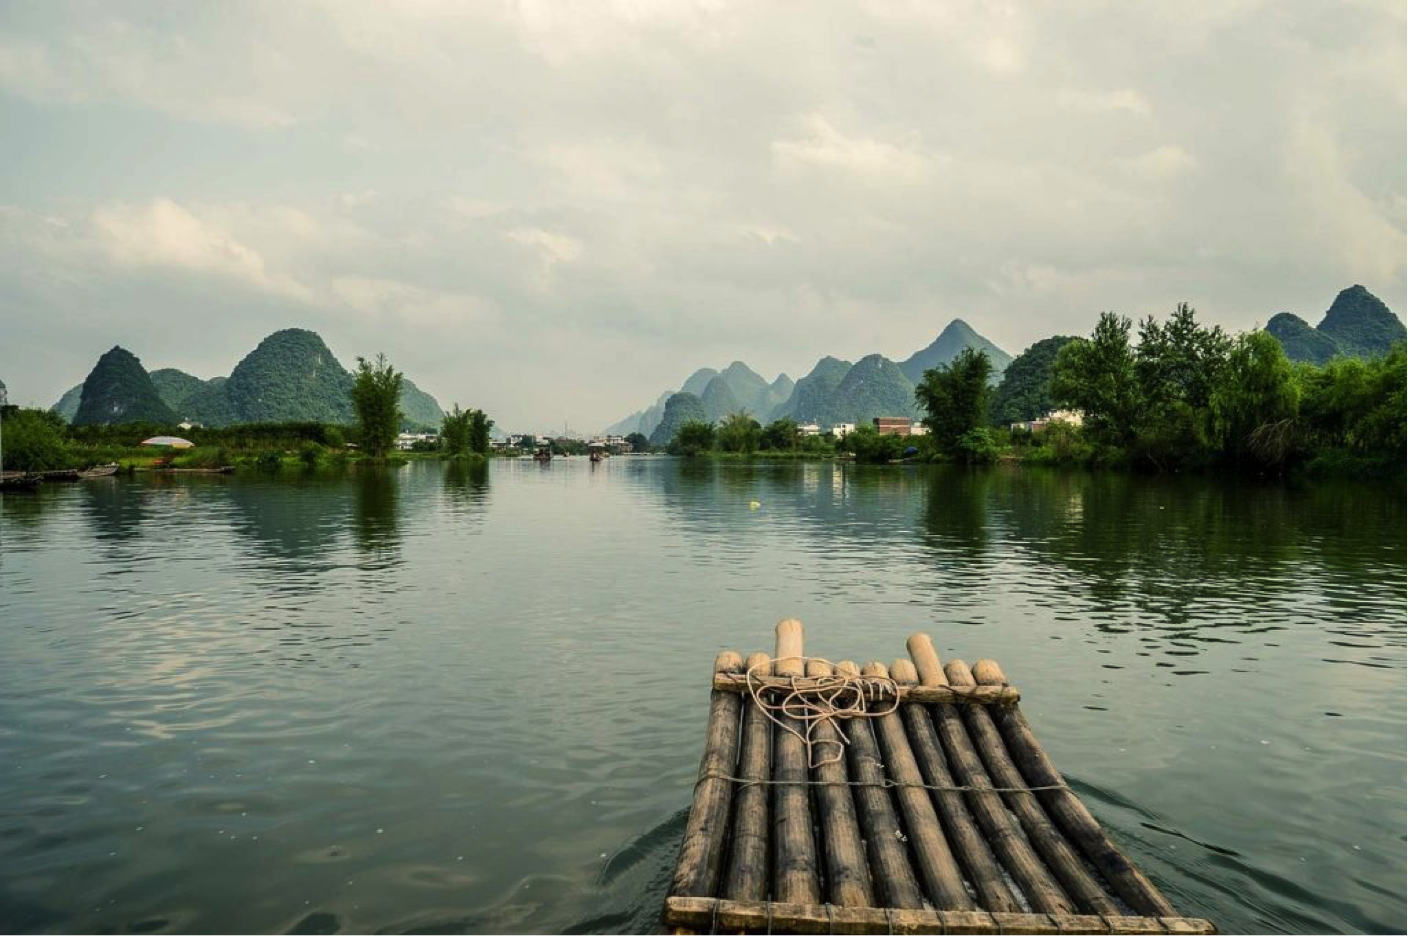 white water rafting on the Zijiang River in Guilin